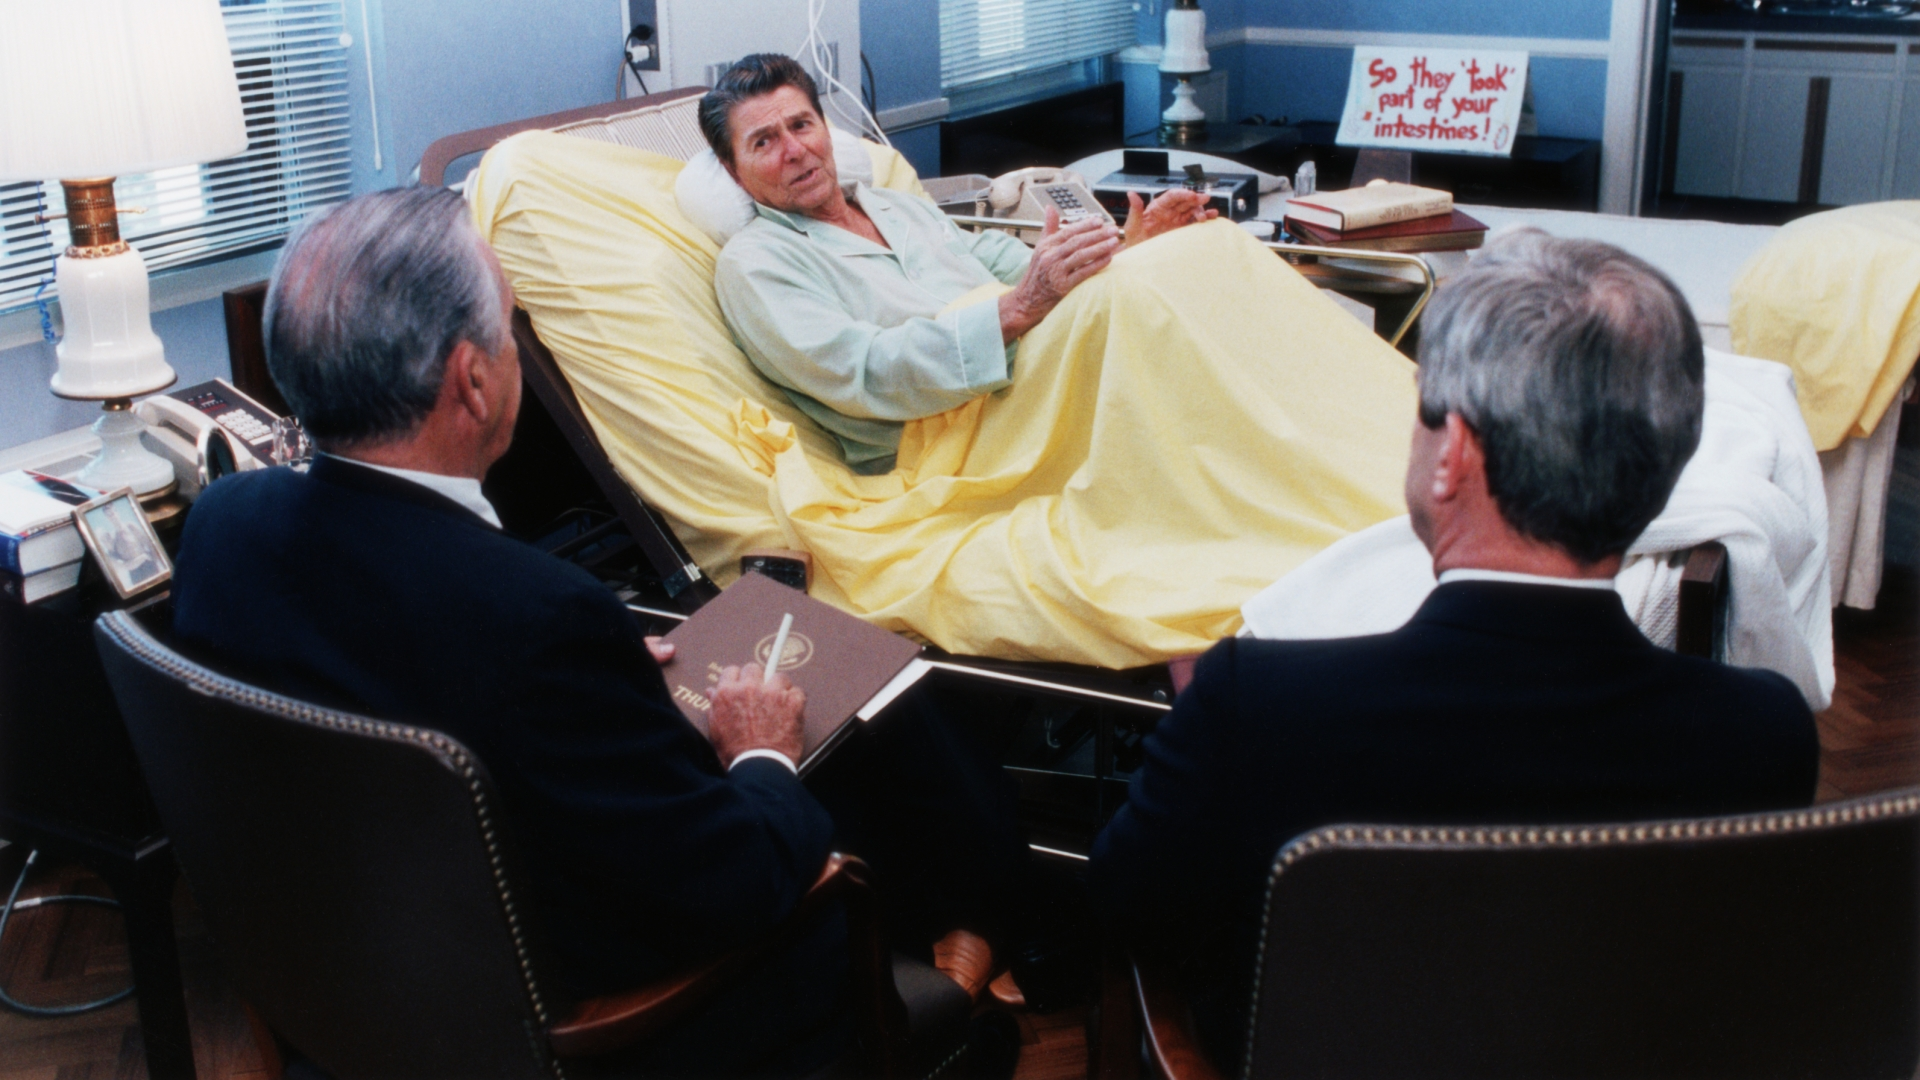 President Ronald Reagan holding a meeting with advisers while in the hospital for colon cancer surgery, 1985. (Credit: Corbis via Getty Images)